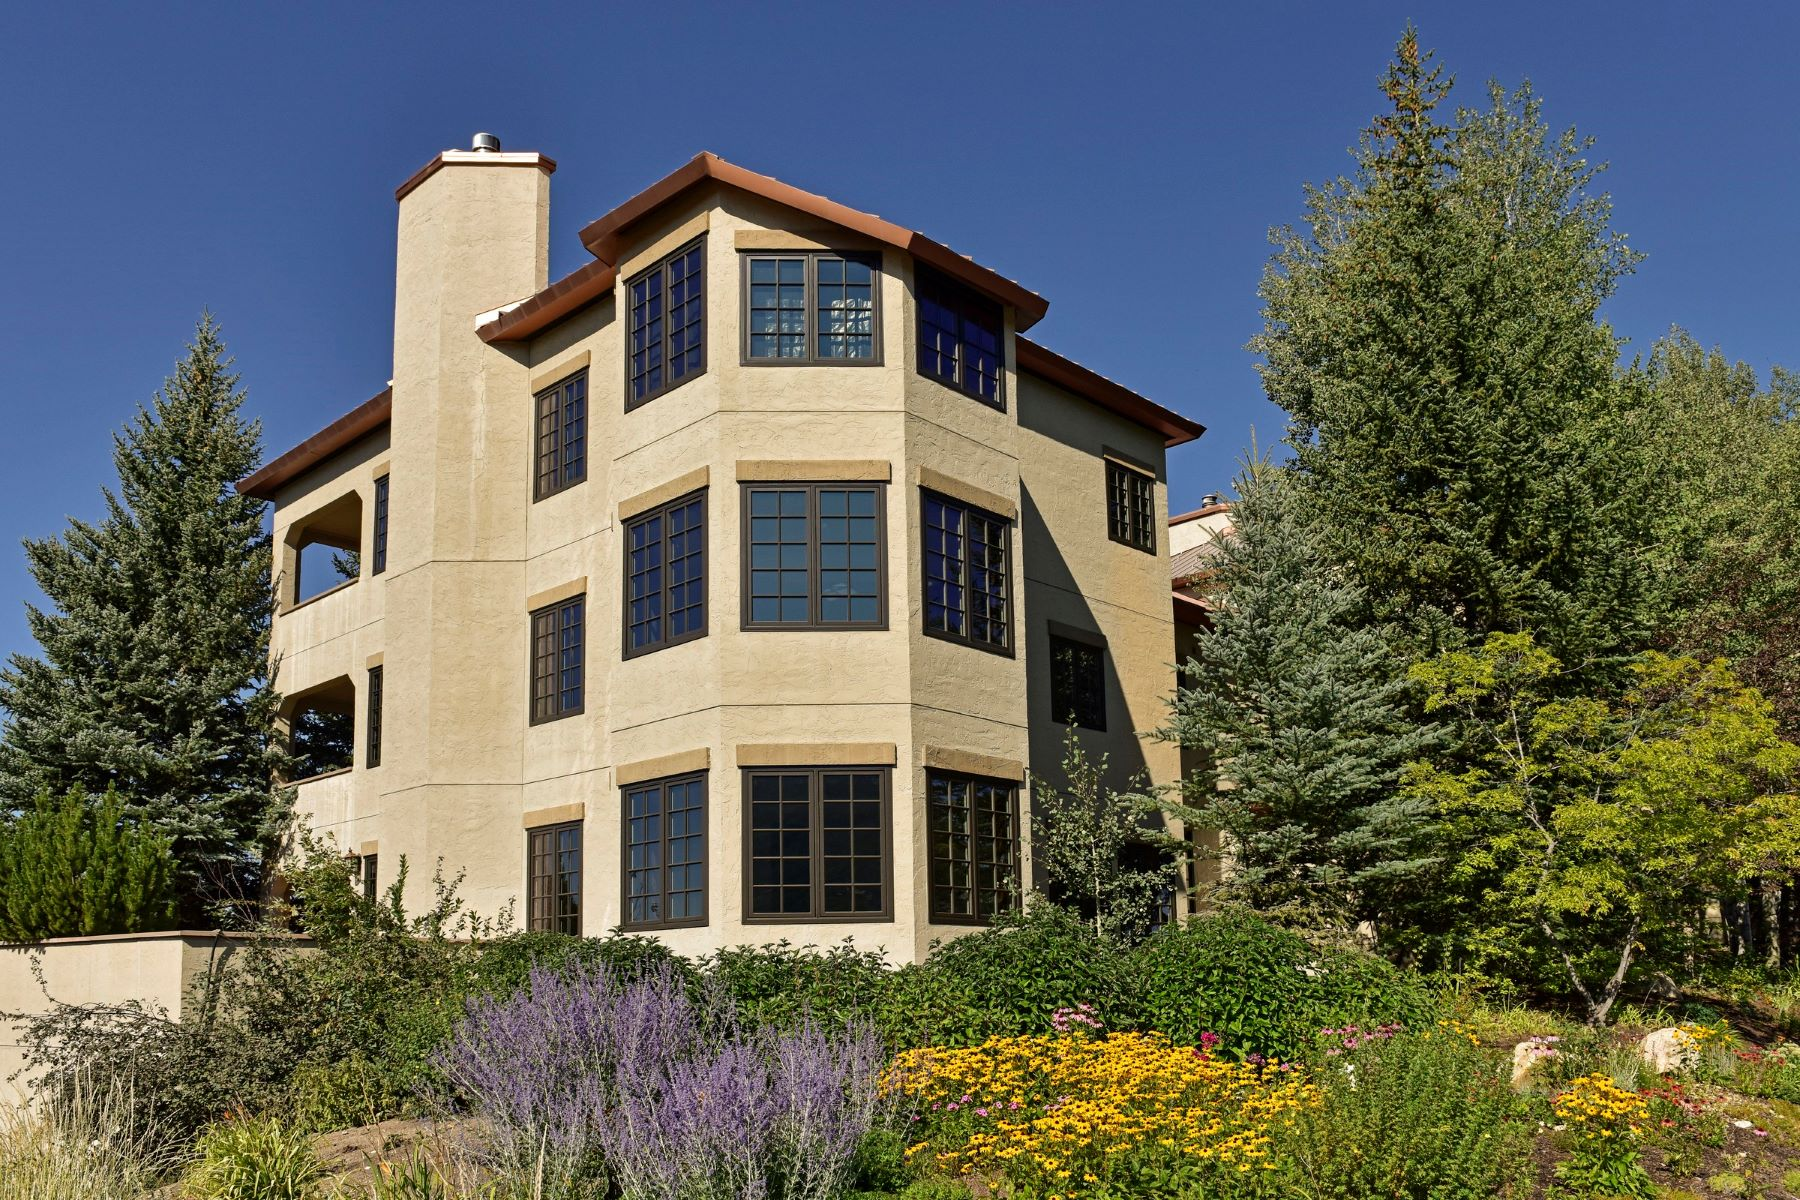 Condominium for Sale at Atriums at Steamboat 2600 Eagleridge Drive #24 Steamboat Springs, Colorado 80487 United States